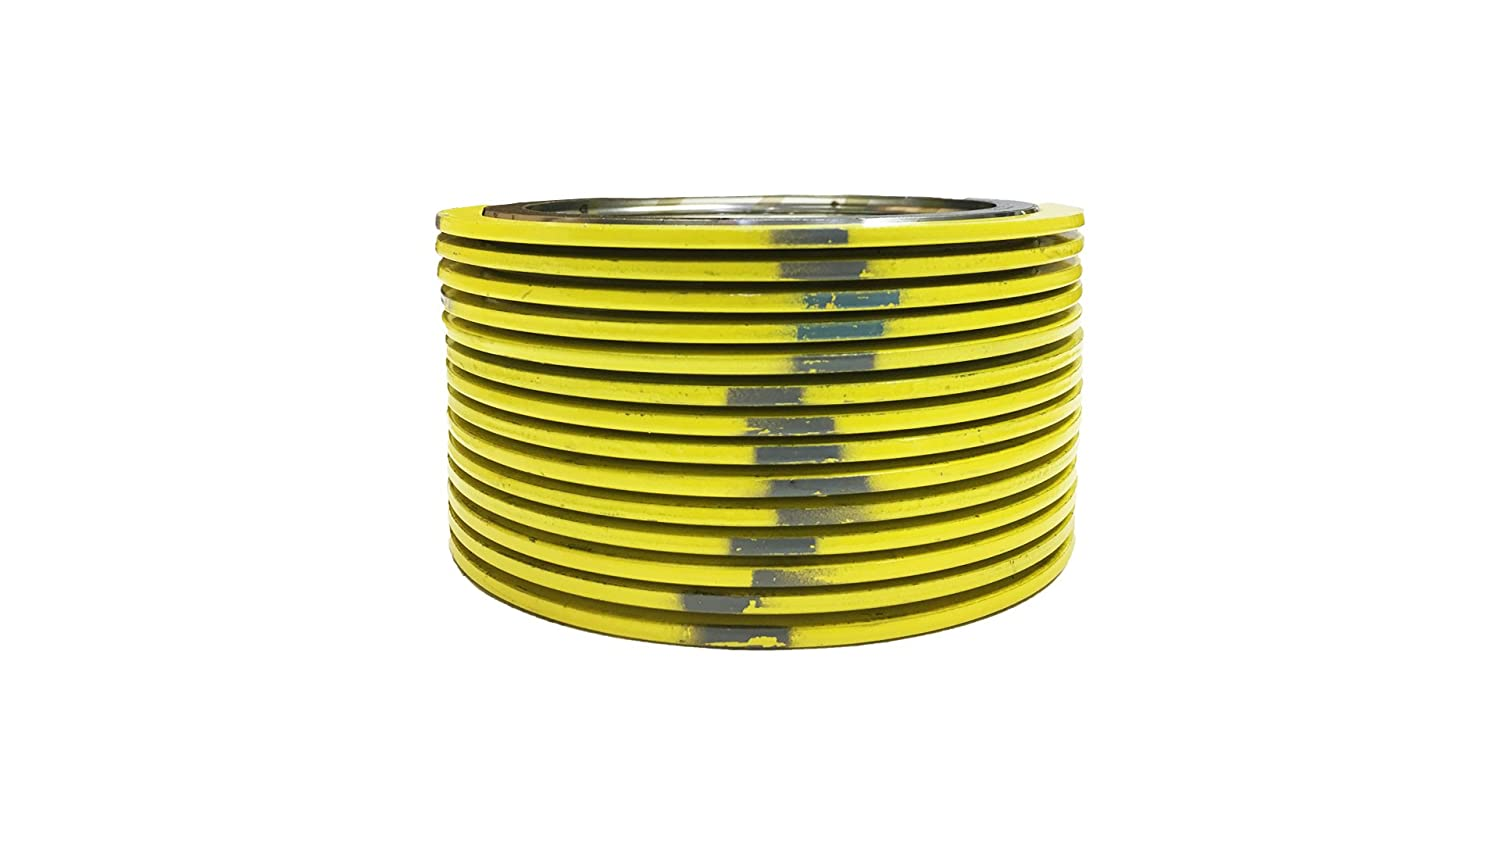 Sterling Seal 9000IR3304GR2500X12 304 Stainless Steel Spiral Wound Gasket with 304SS Inner Ring and Flexible Graphite Filler of NJ for 3 Pipe Supplied by Sur-Seal Inc Yellow with Grey Stripe Pack of 12 Pressure Class 2500# for 3 Pipe